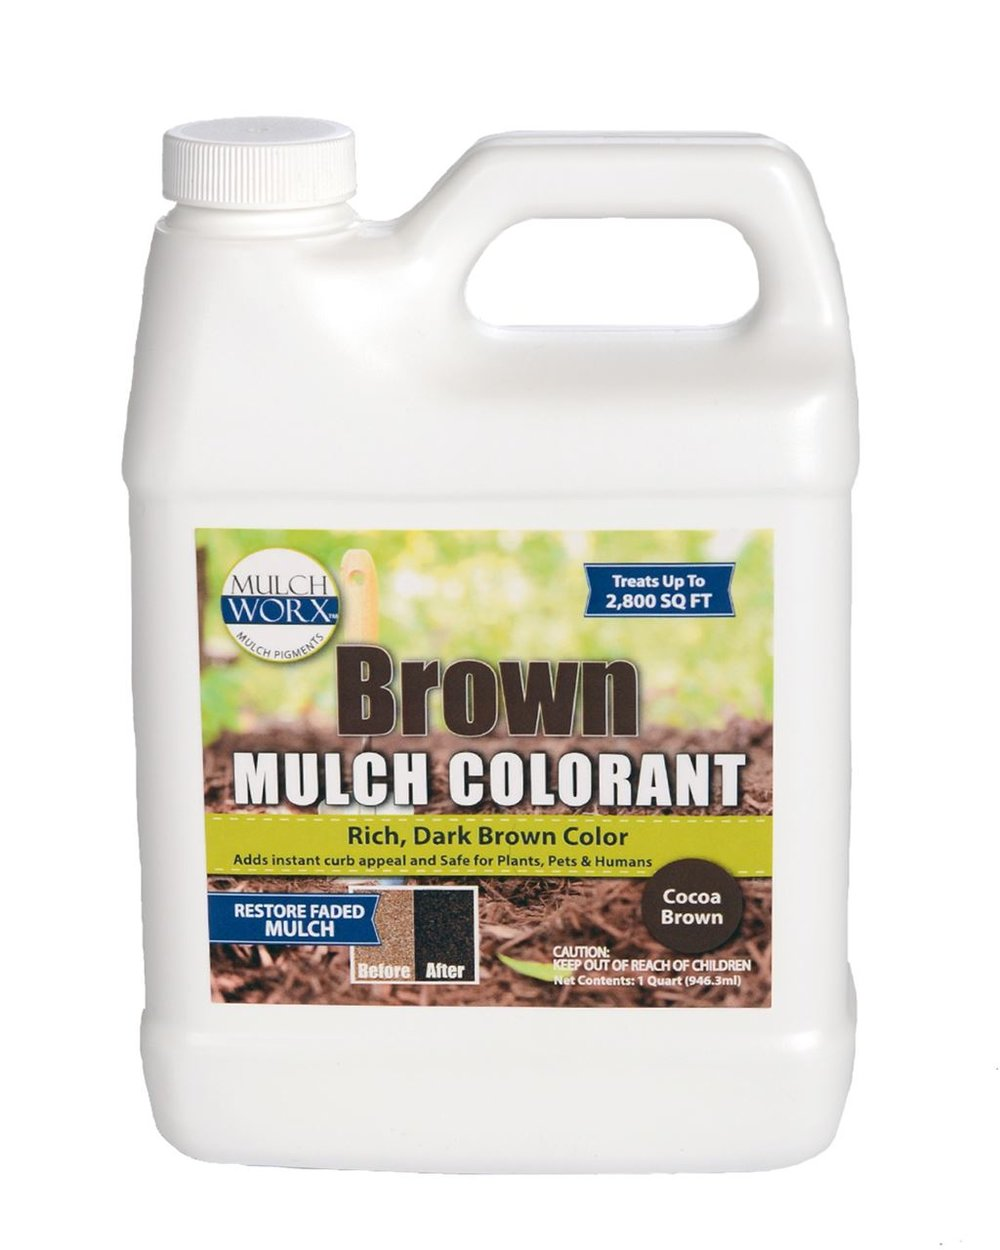 mulch worx brown dye.jpg